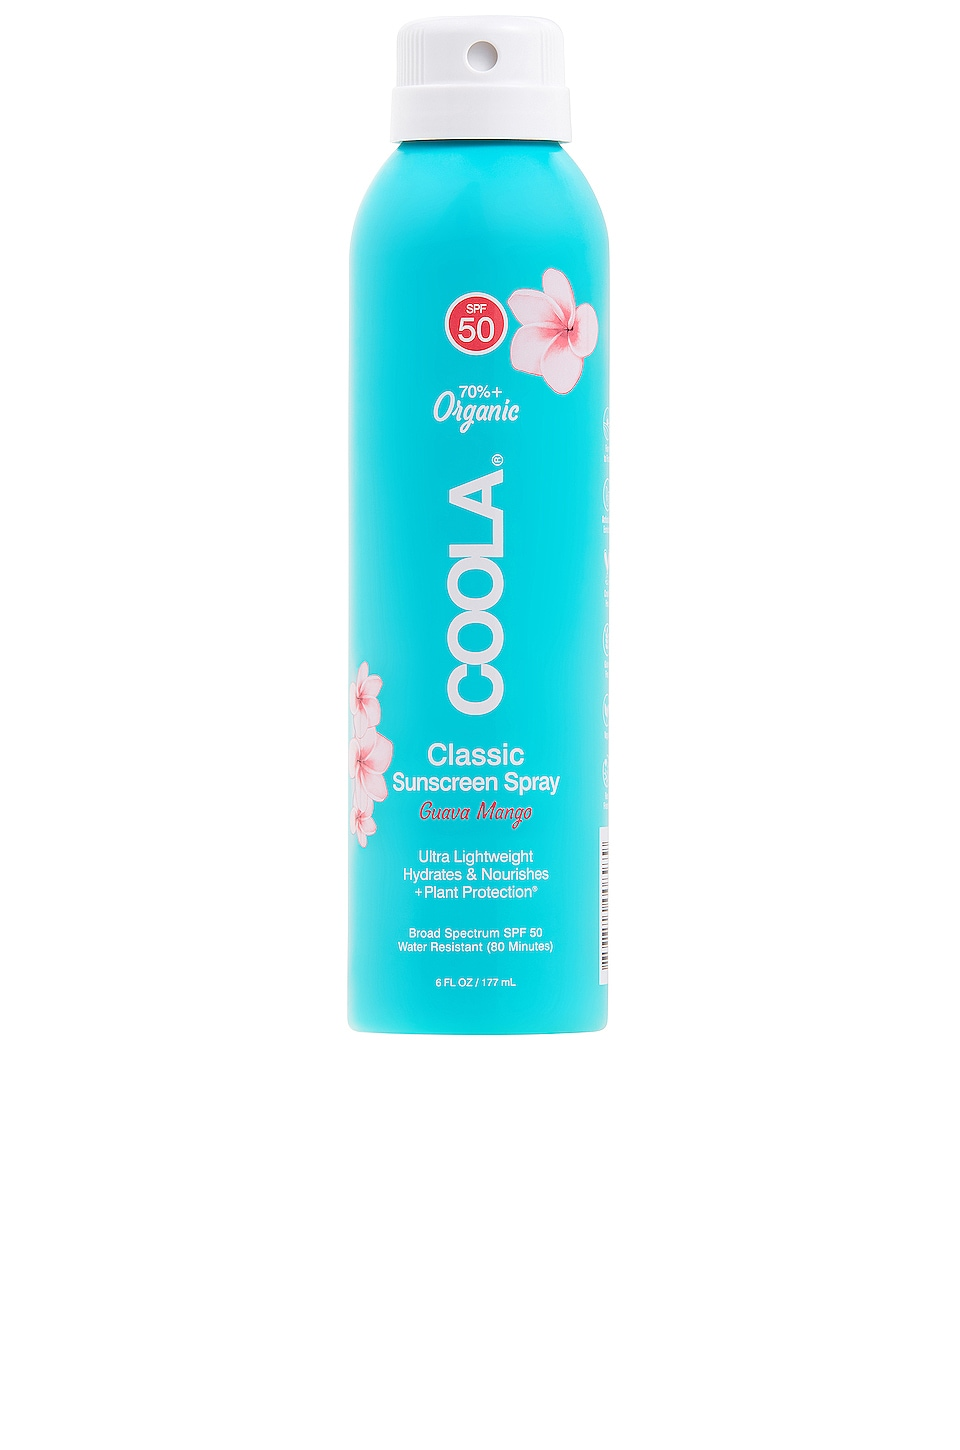 COOLA Eco-Lux Body SPF 50 Guava Mango Sunscreen Spray